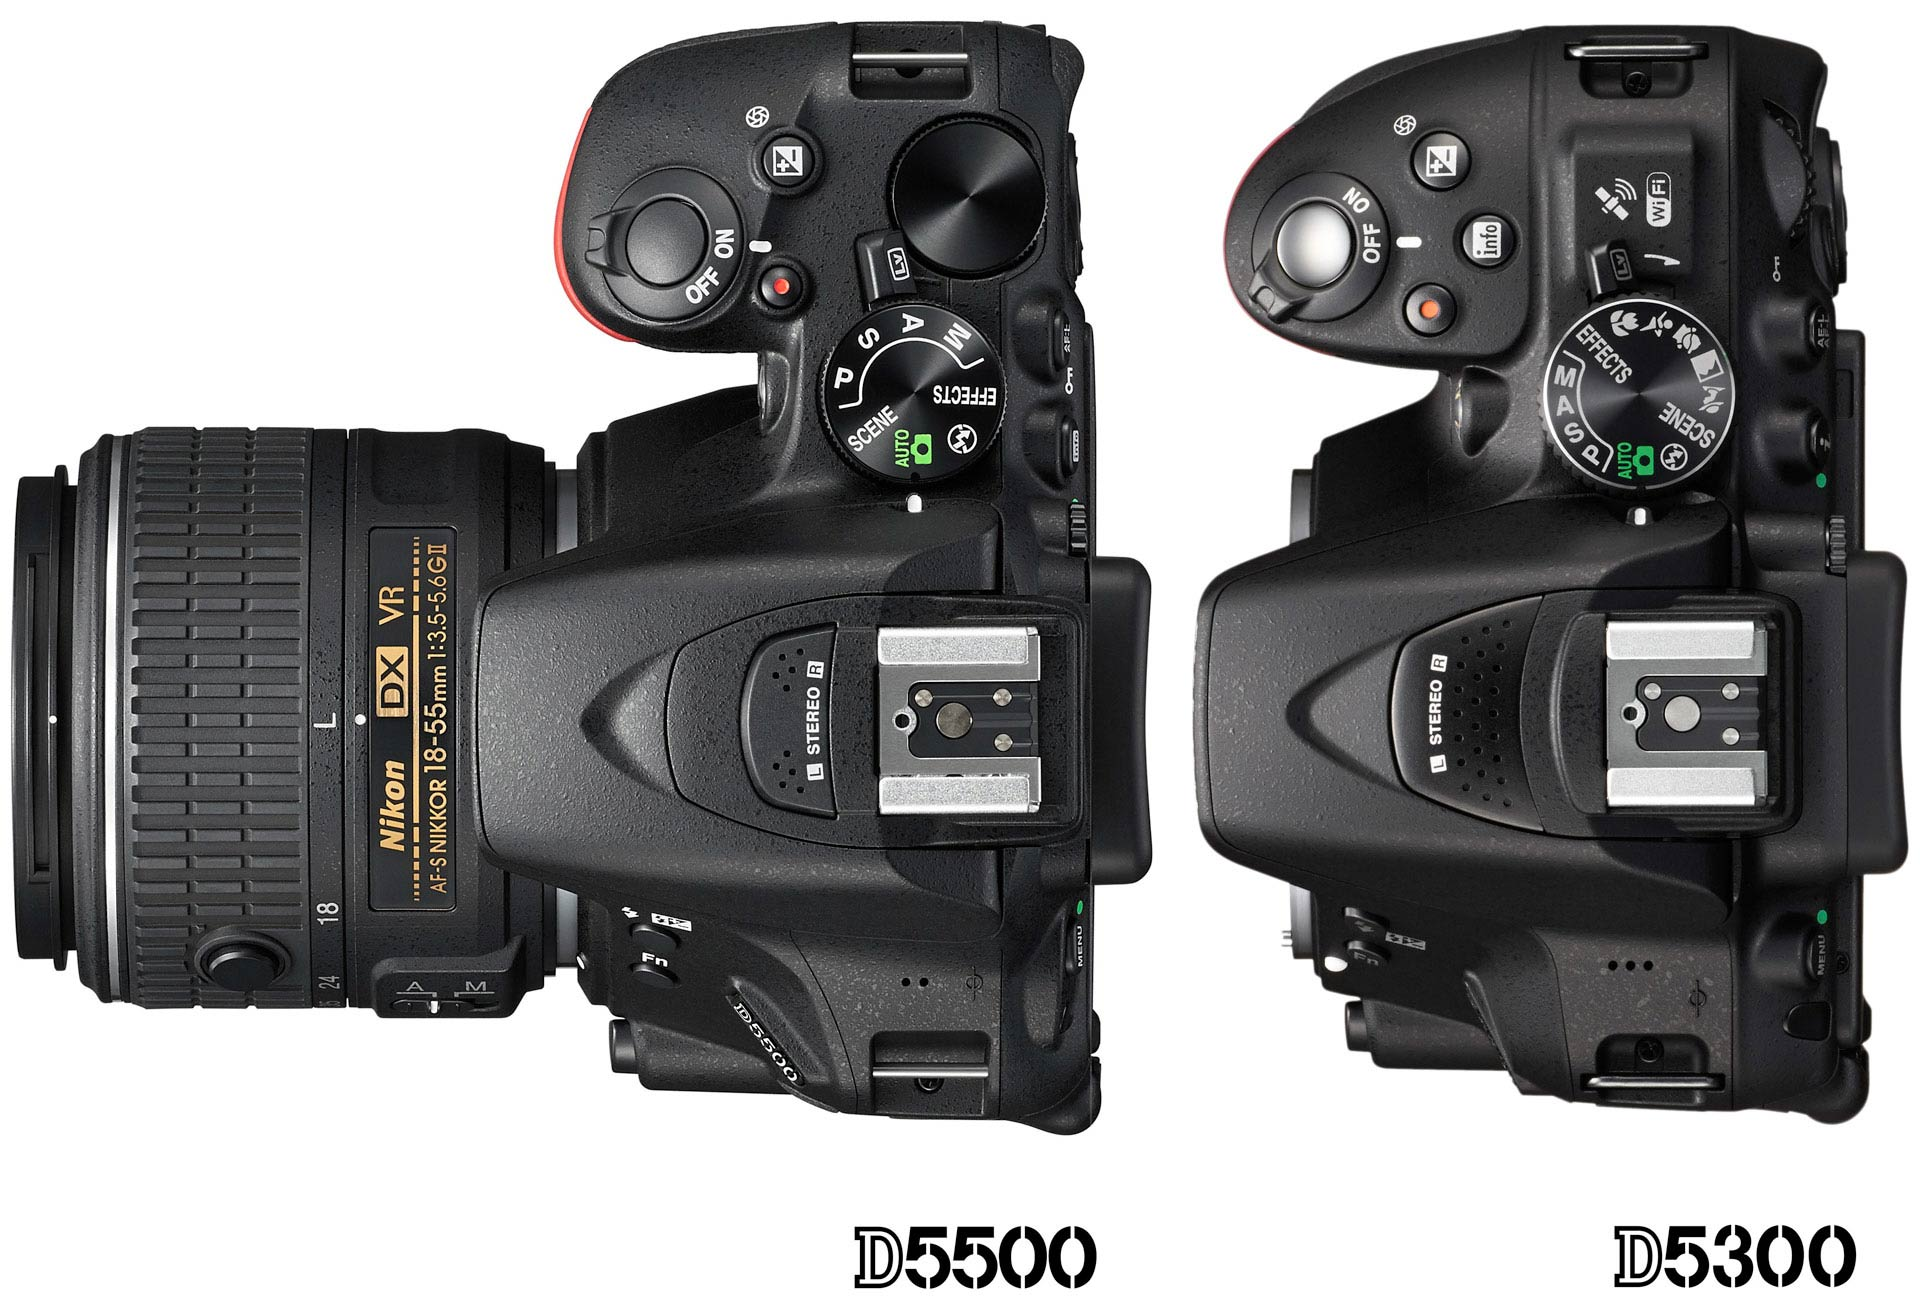 The Nikon D5500, left, is slightly smaller than the D5300, and about 60g lighter.